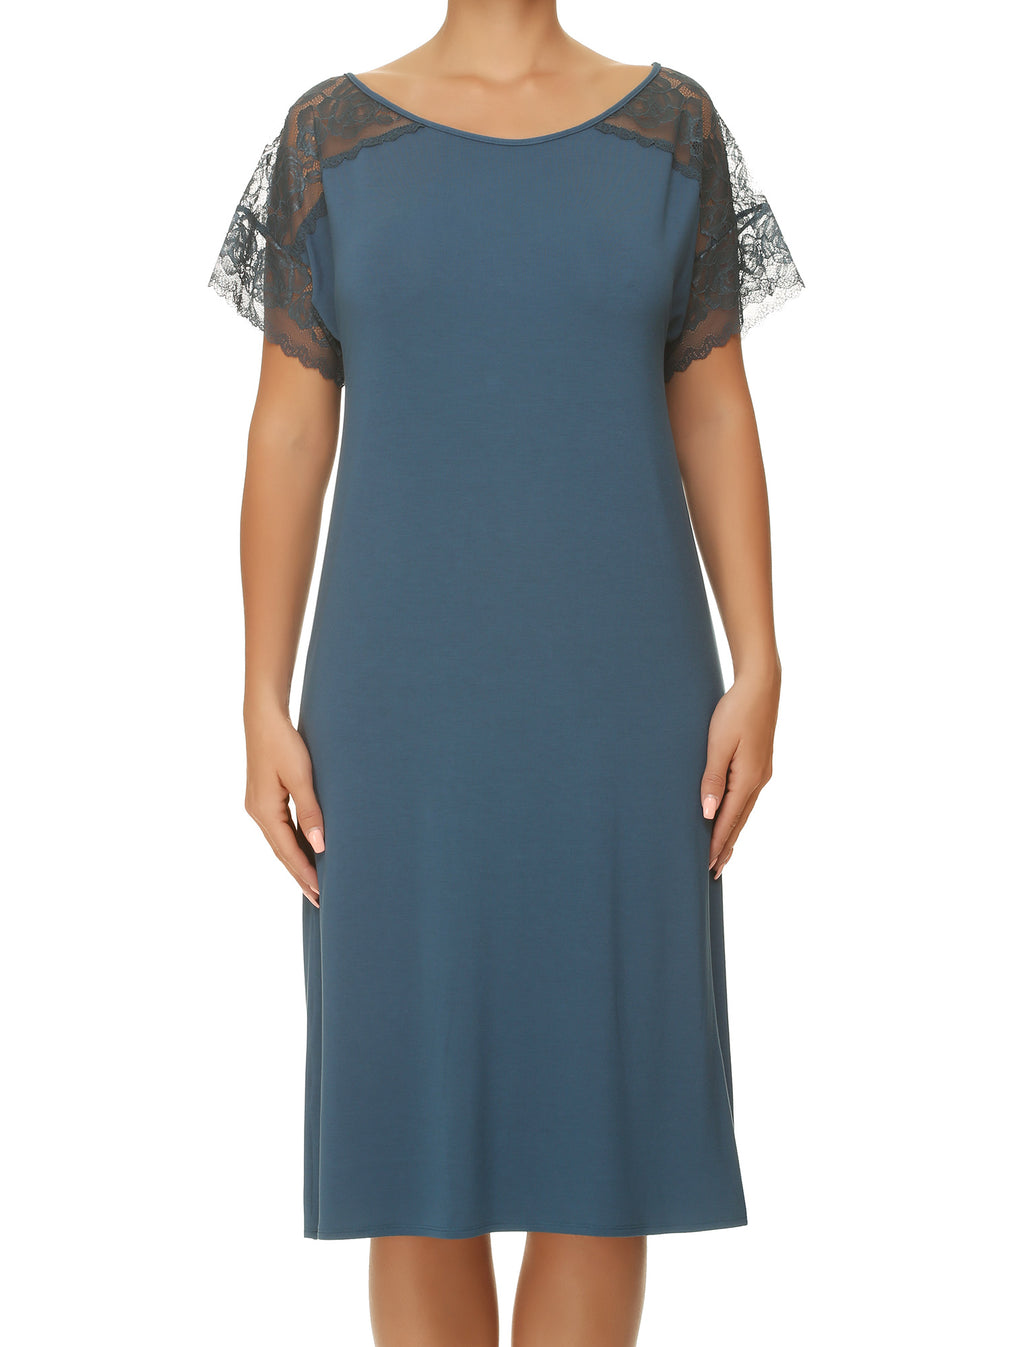 Lauma, Blue Viscose Night Dress, On Model Front, 77G92